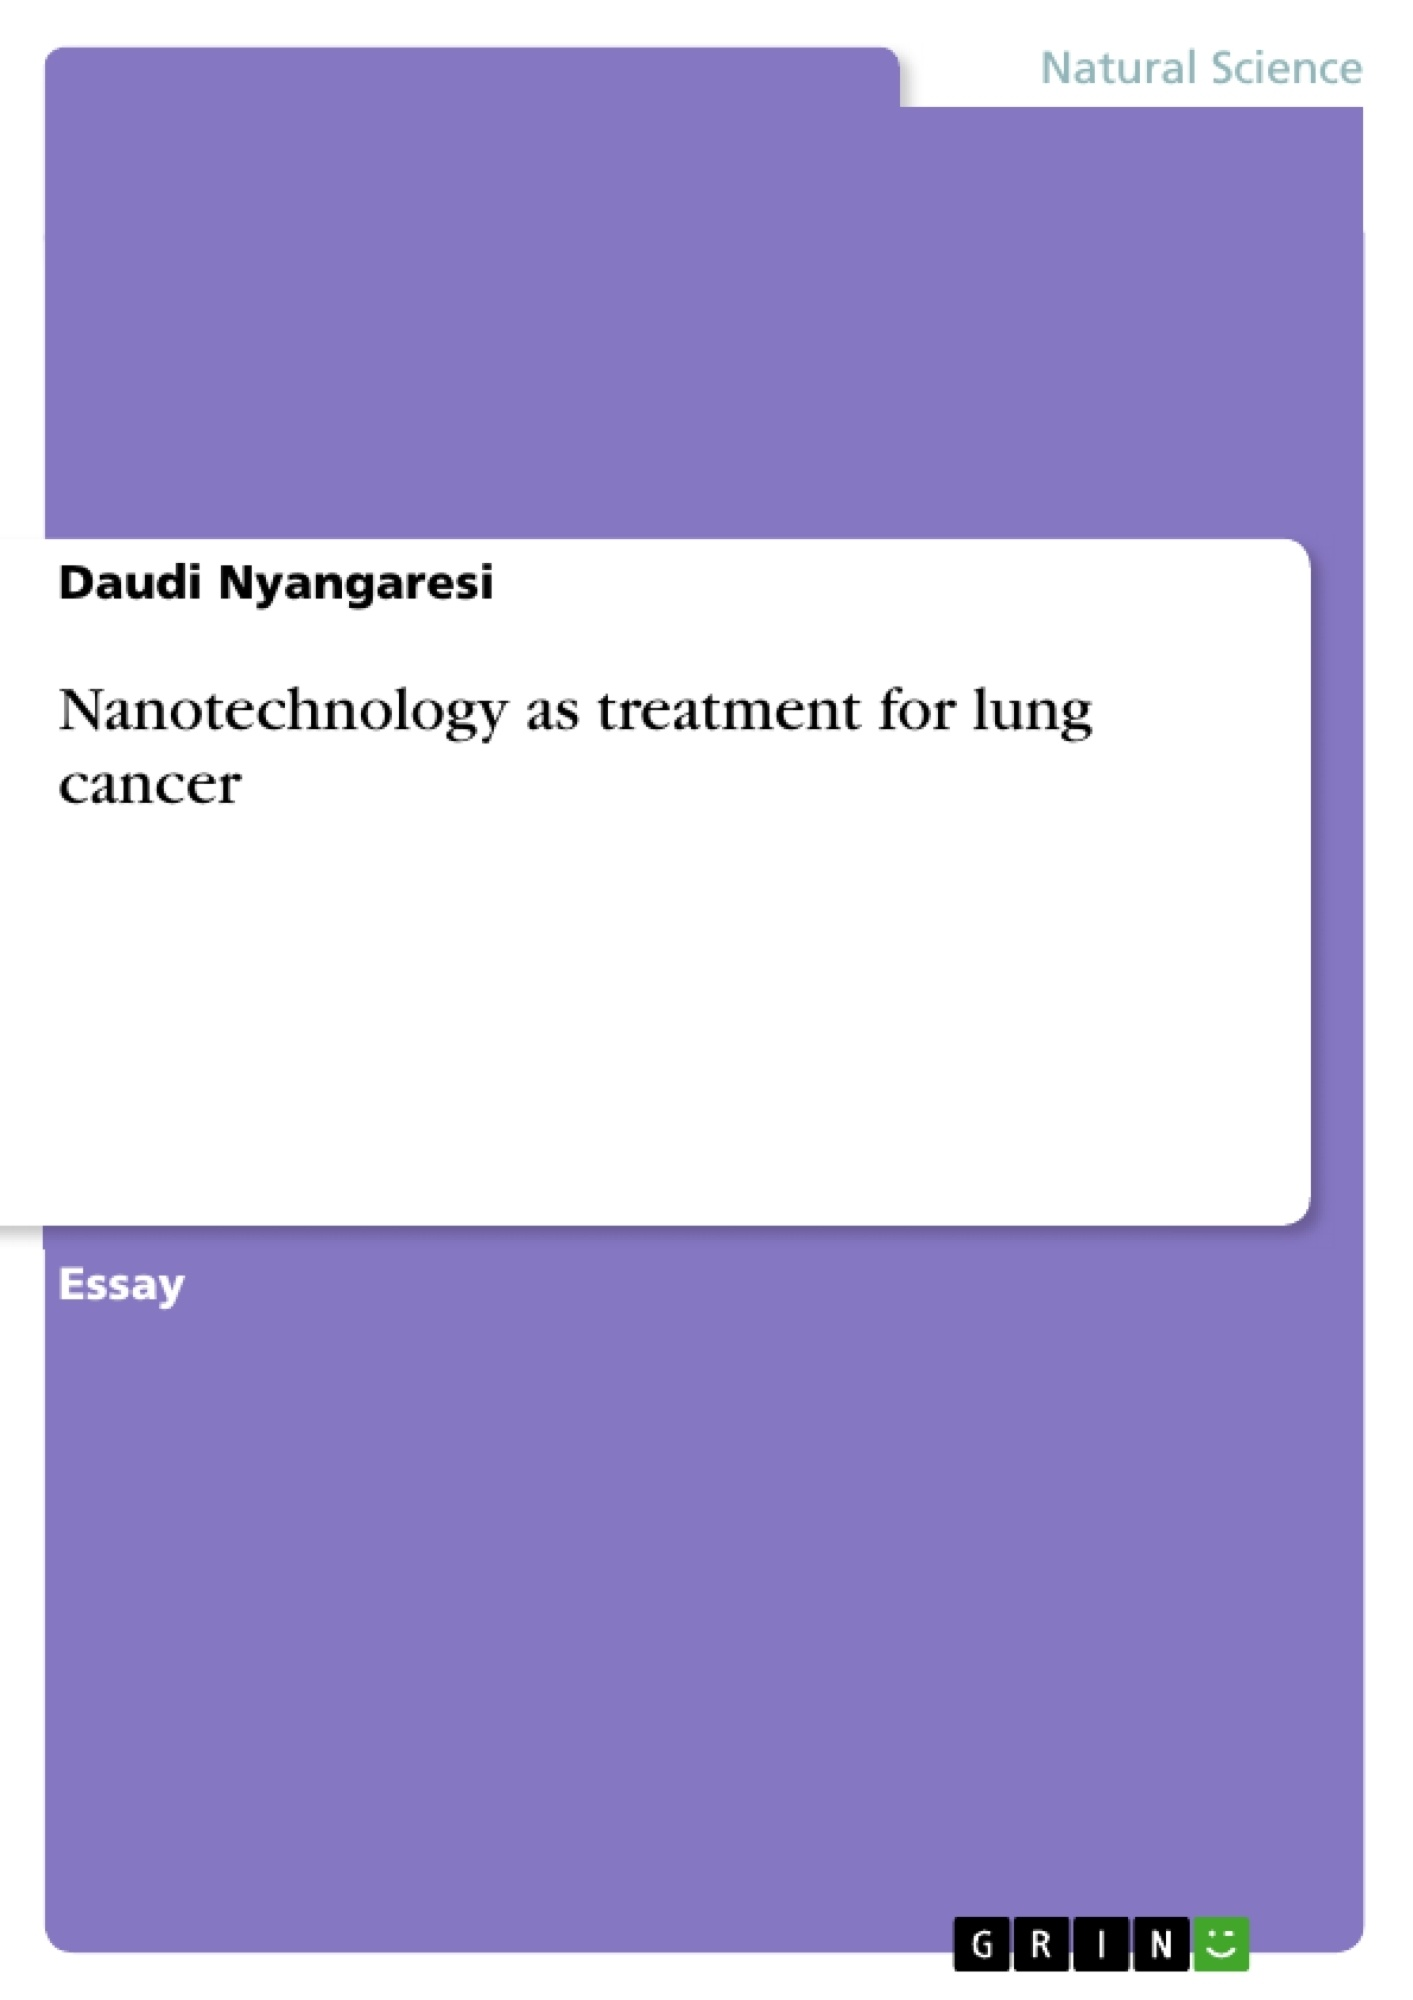 Title: Nanotechnology as treatment for lung cancer